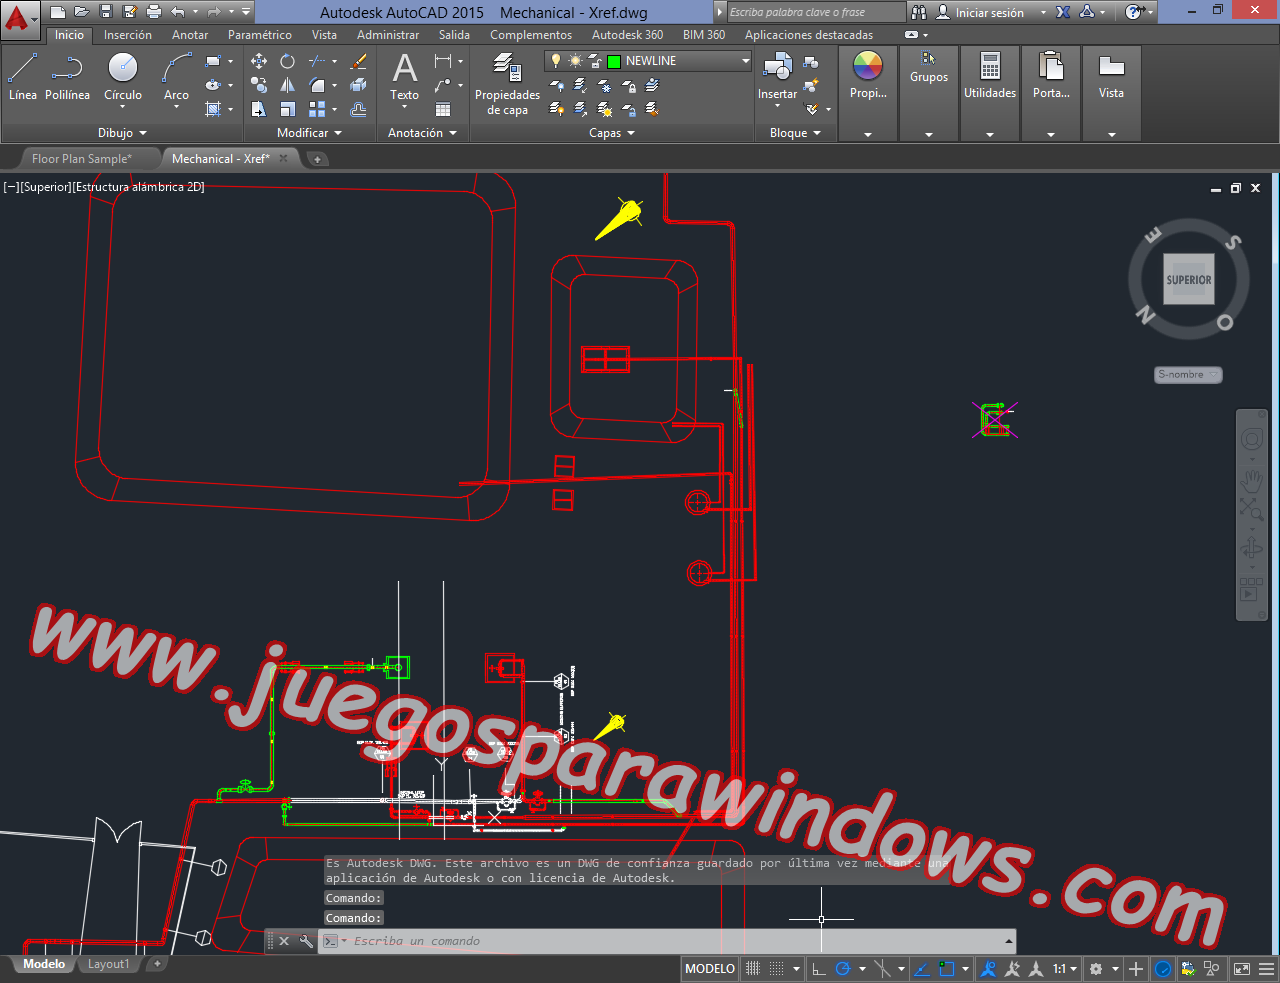 AutoCAD 2015 Full PC ESPAÑOL INGLES 32 y 64 Bits (XFORCE) 13